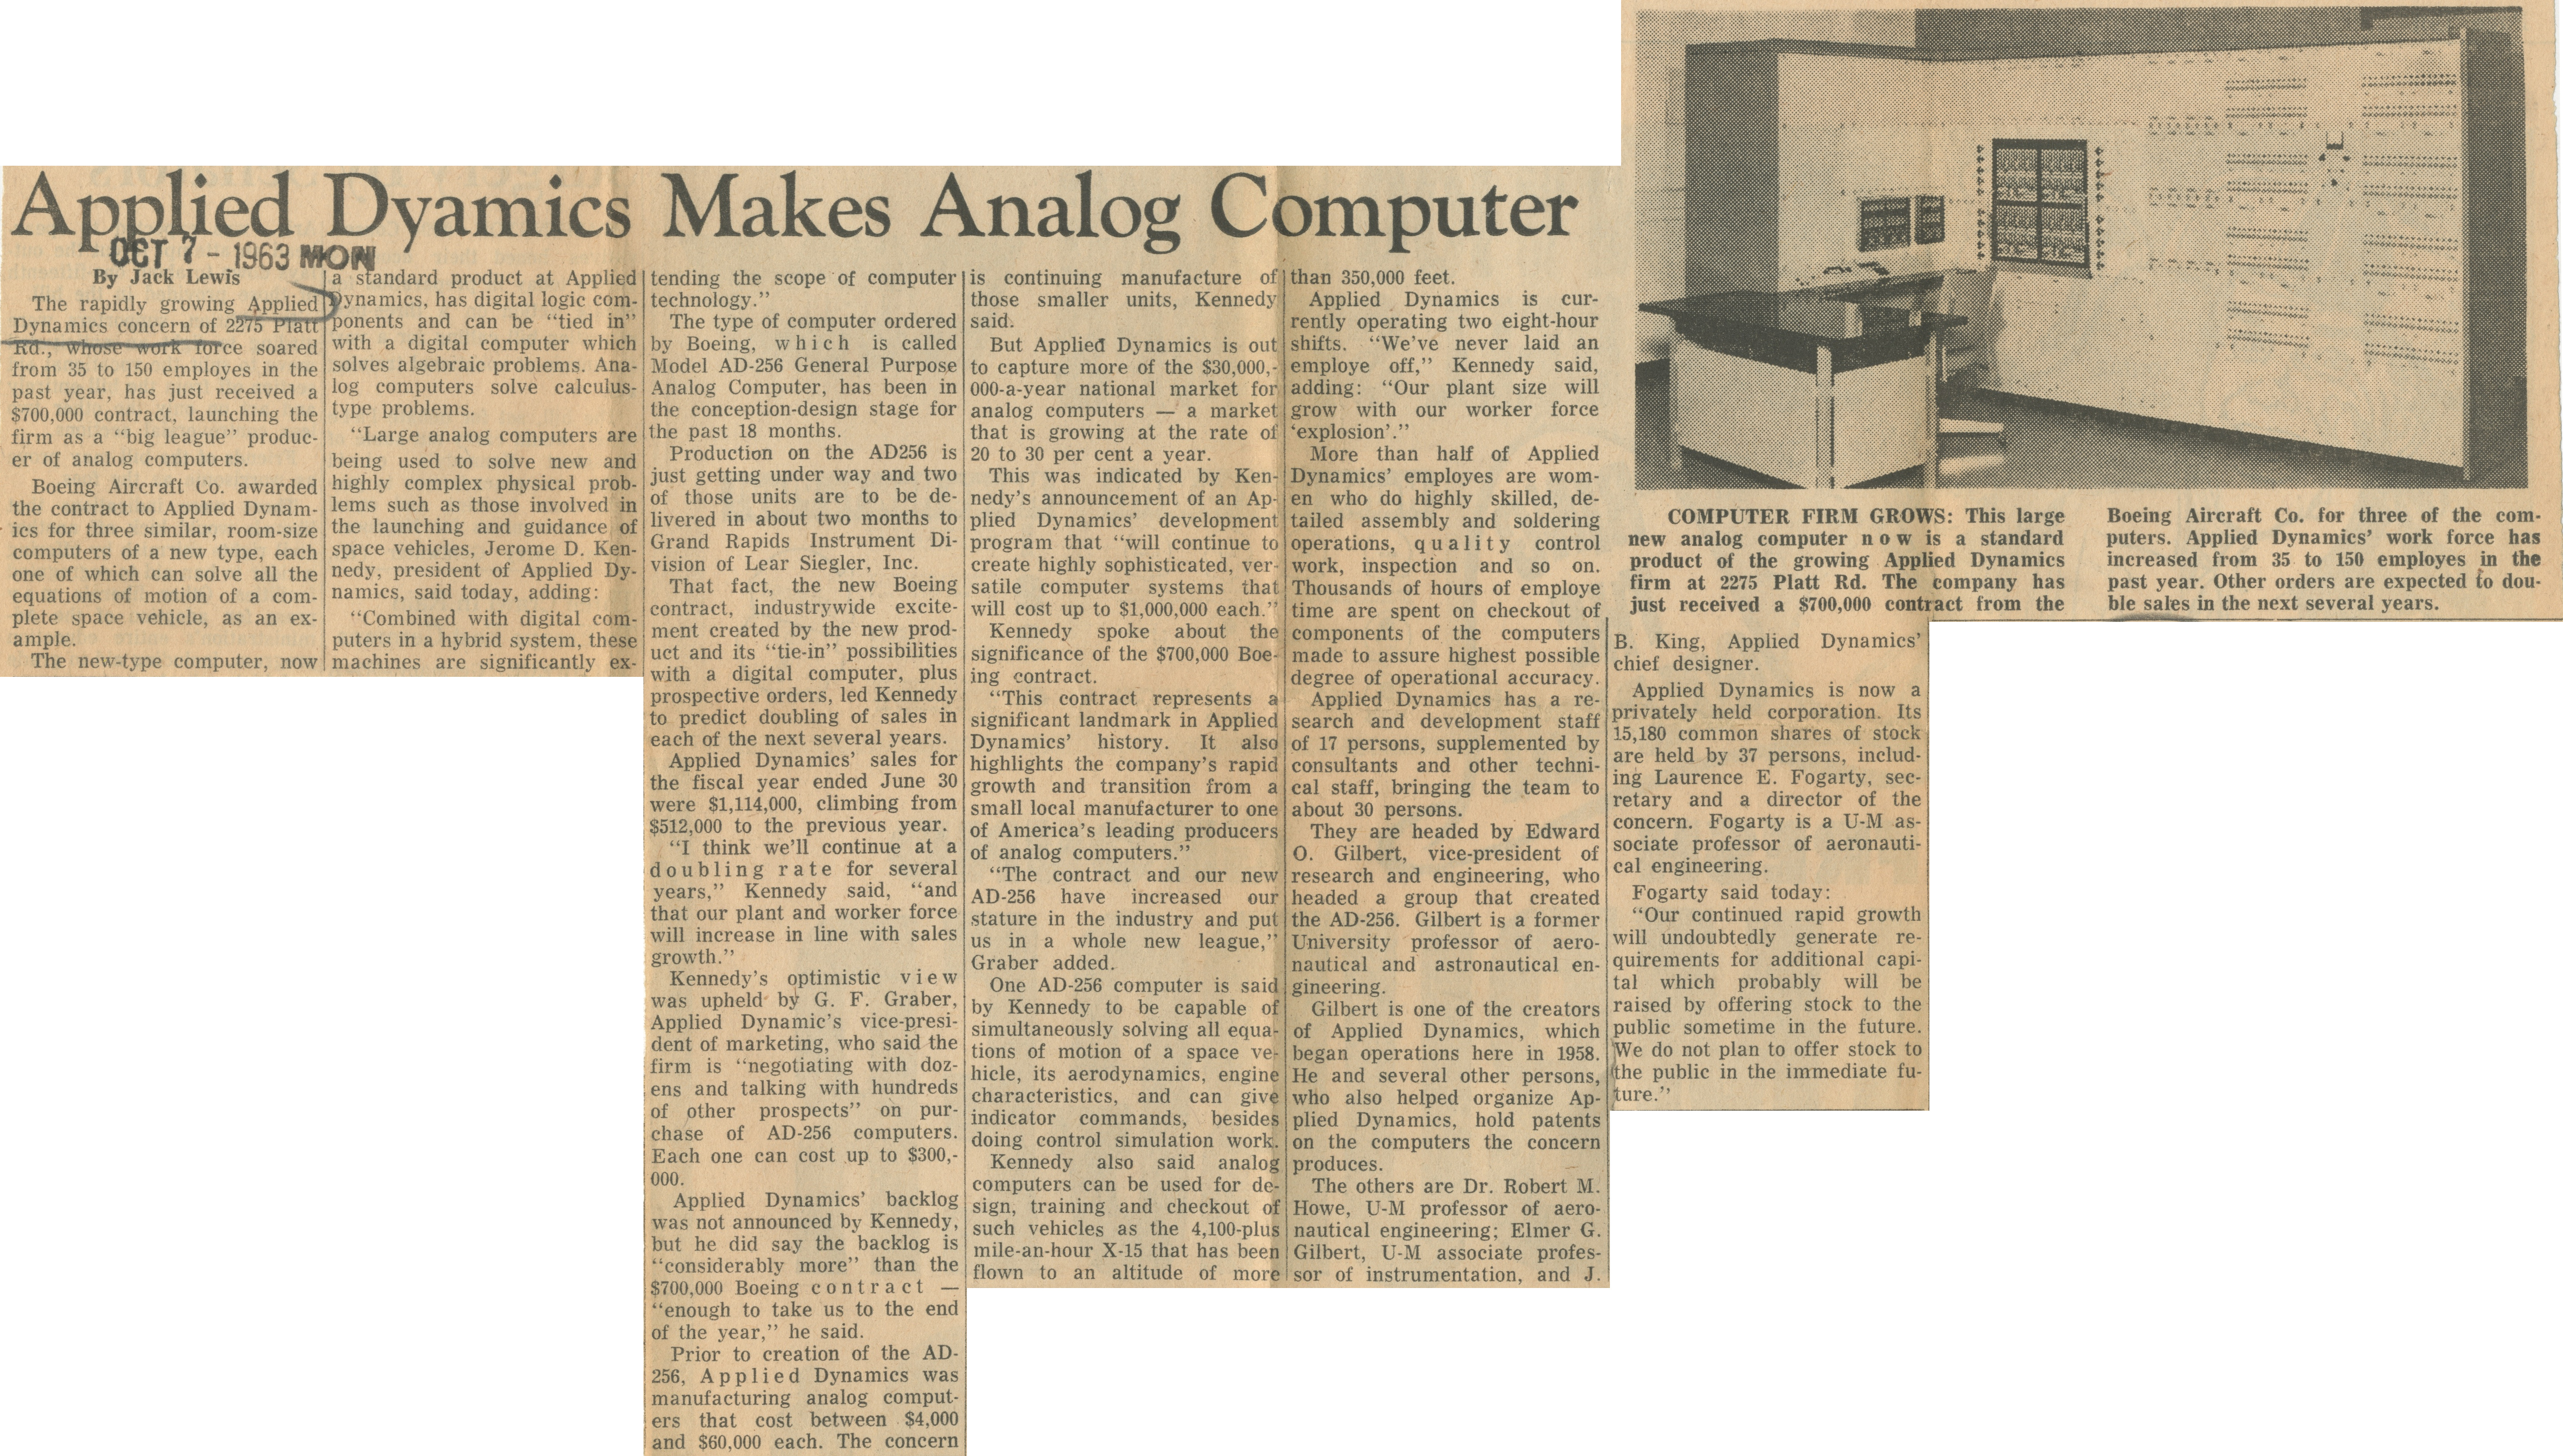 Applied Dynamics Makes Analog Computer image